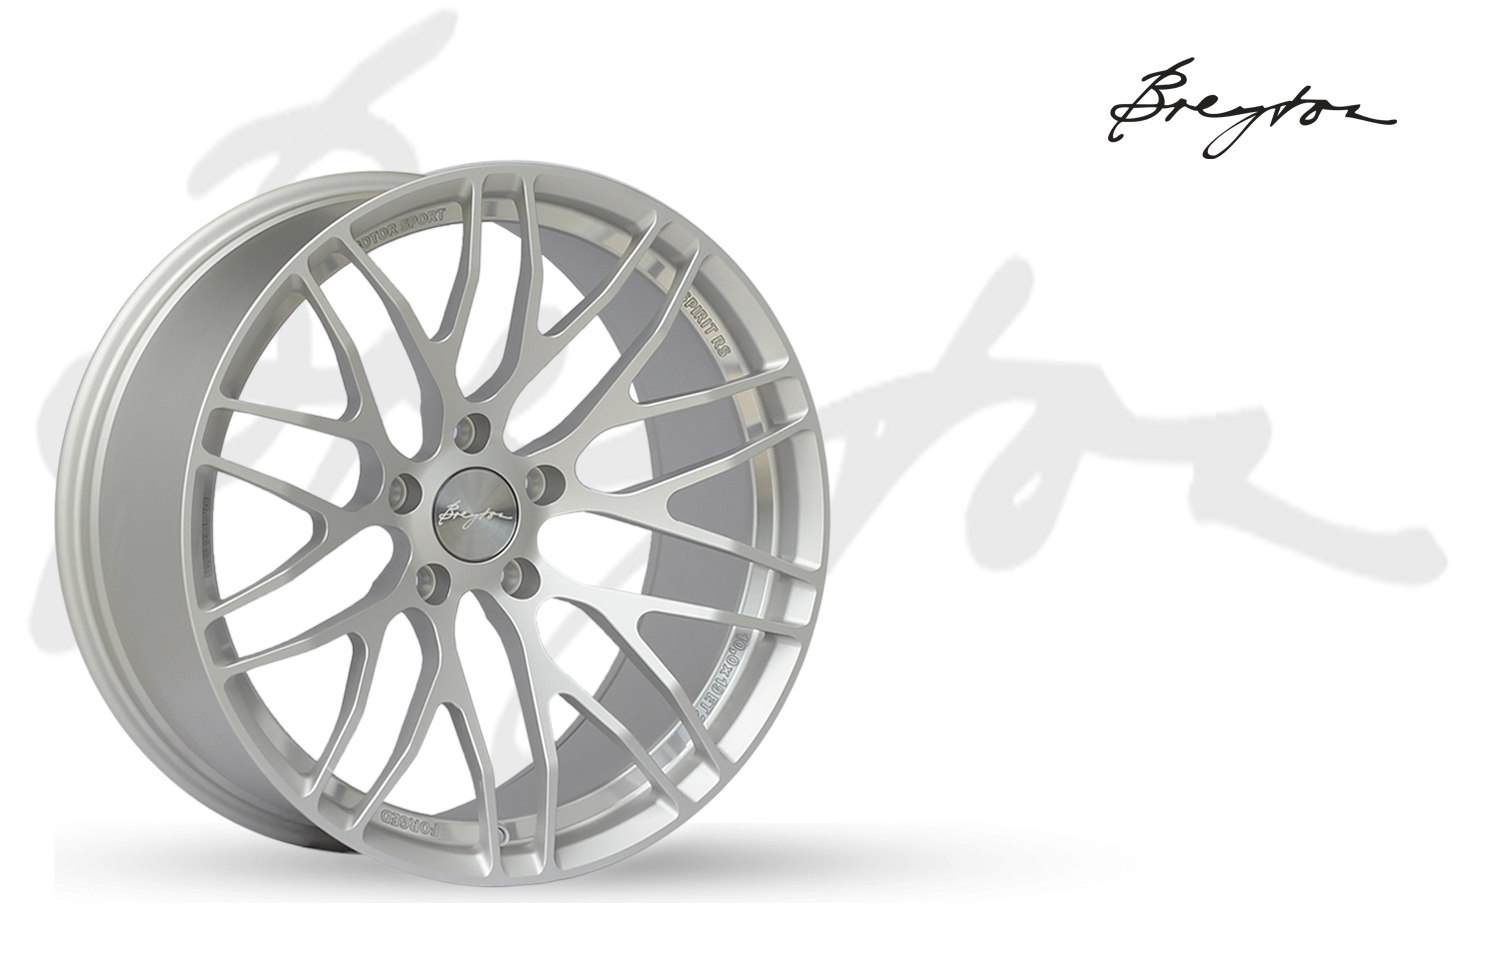 SPIRIT RS SILVER ANODIZED 19x9-10 5x120 +29+23 2